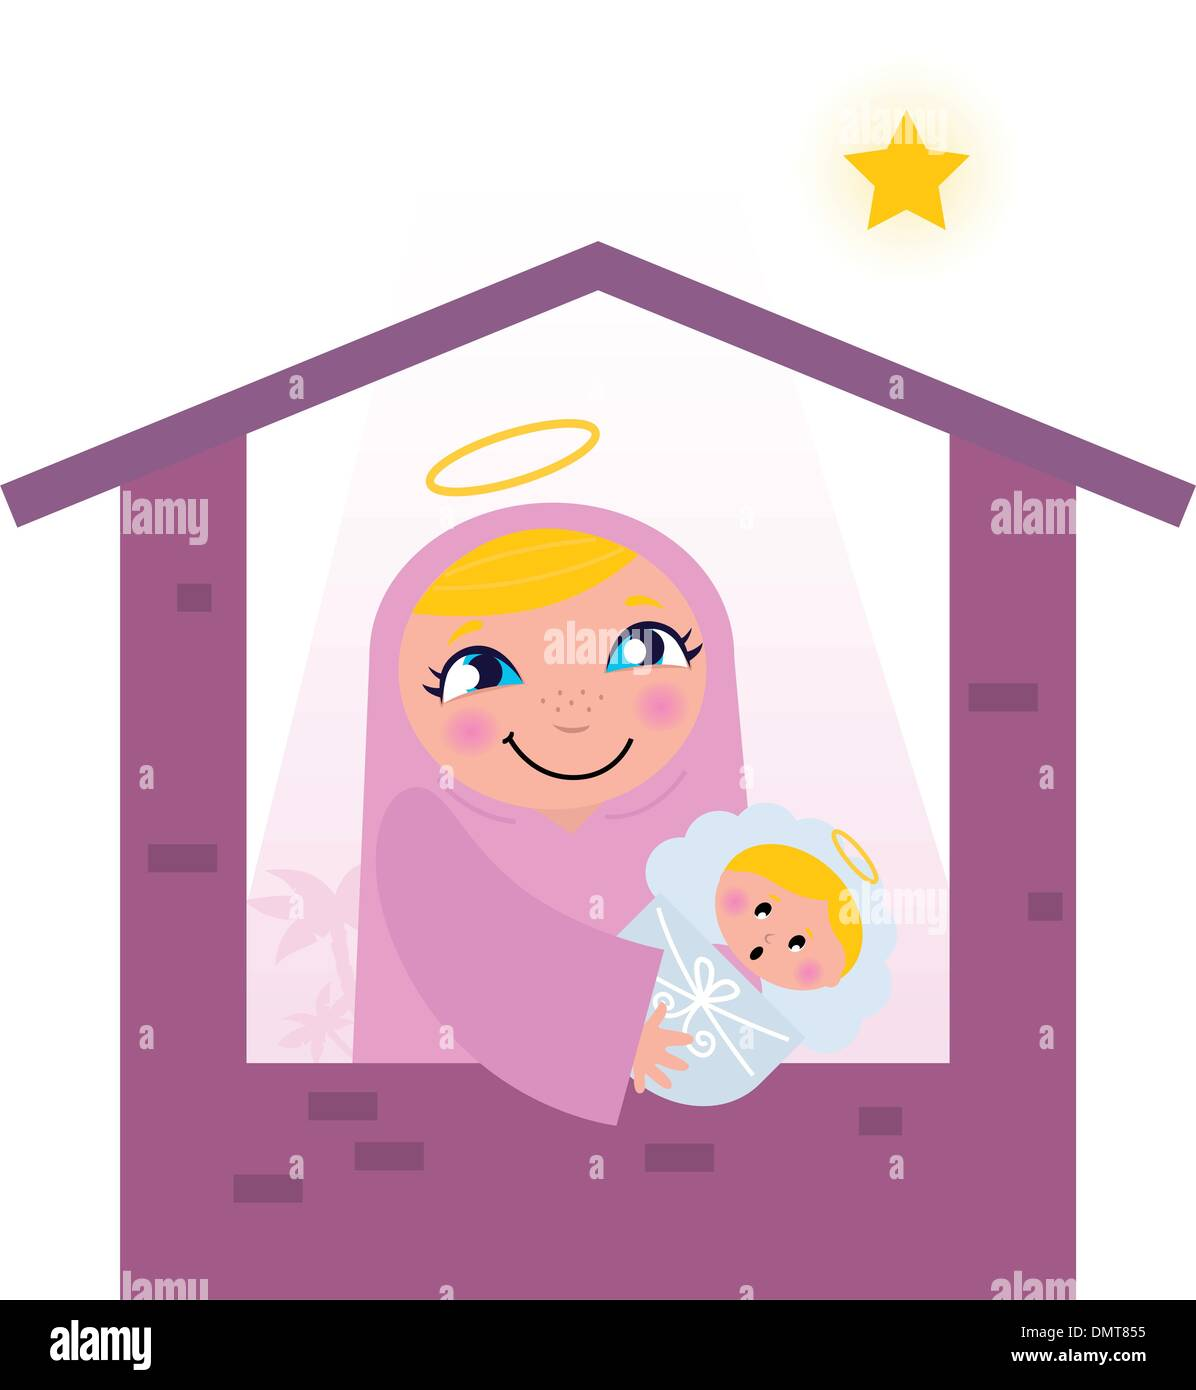 Baby Jesus Stock Vector Images - Alamy